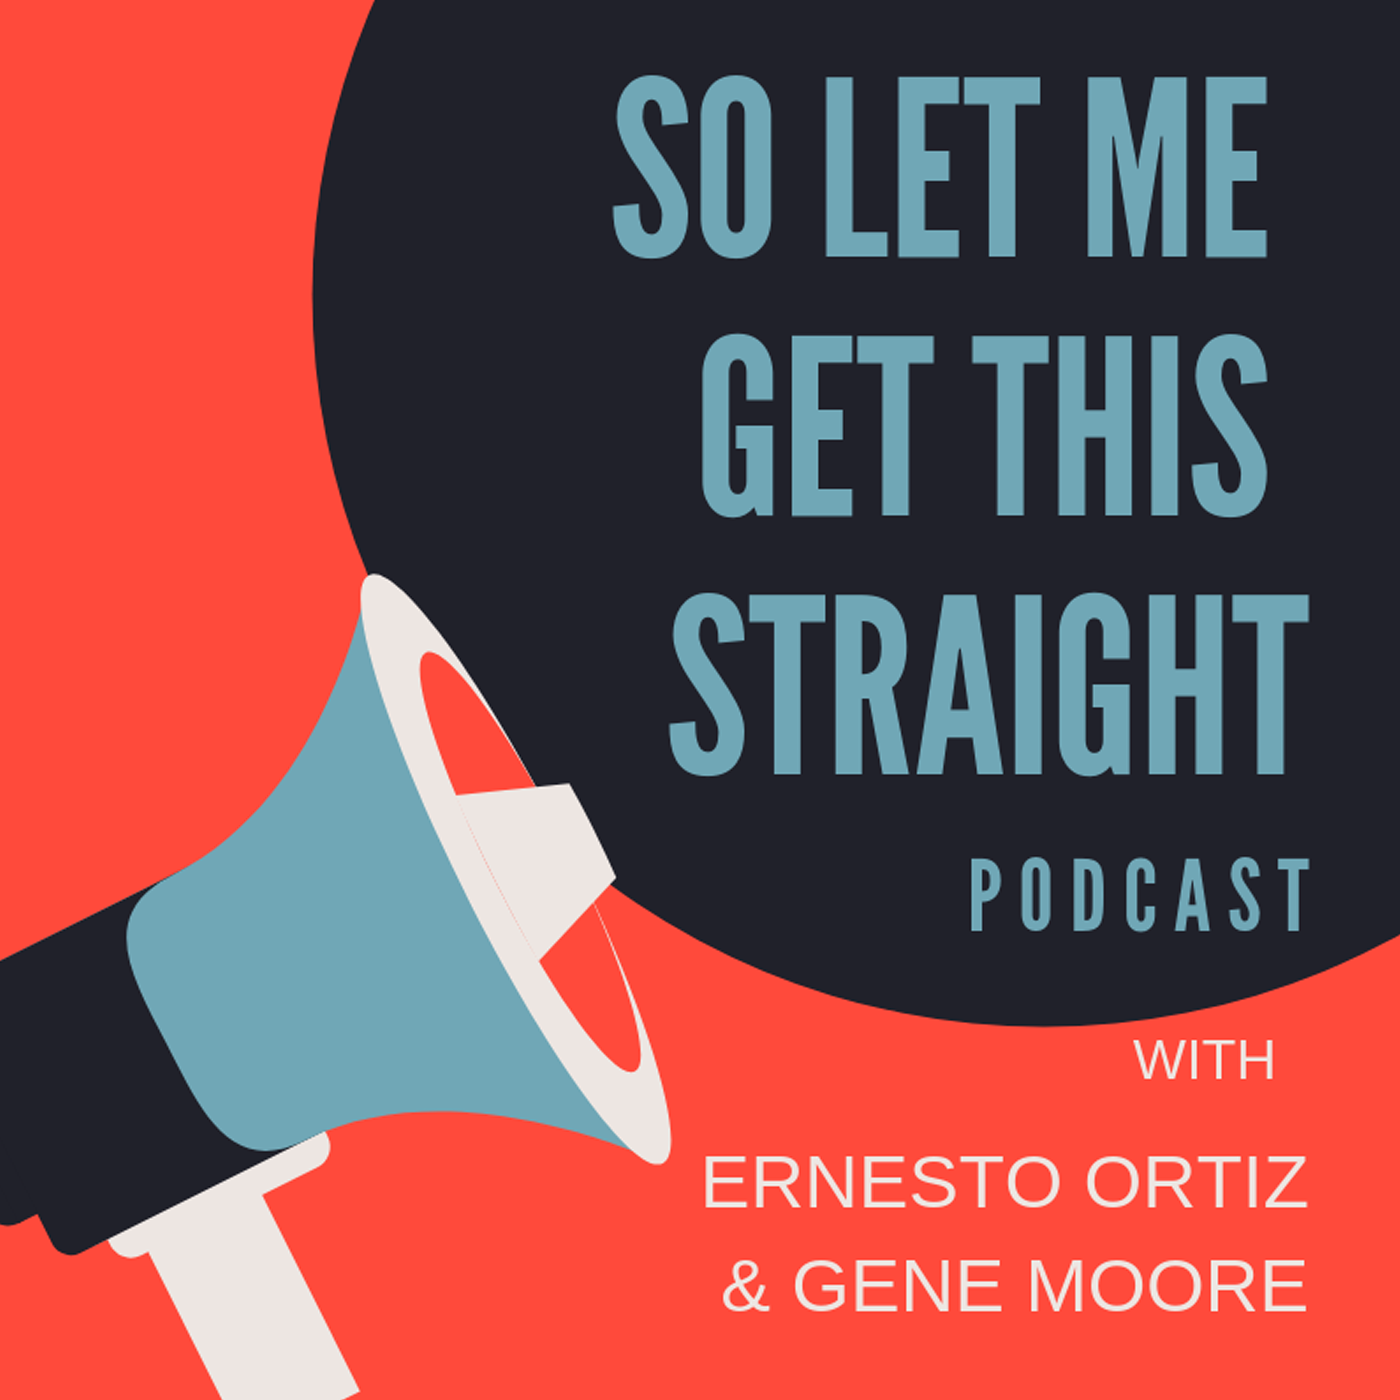 So Let Me Get This Straight Podcast